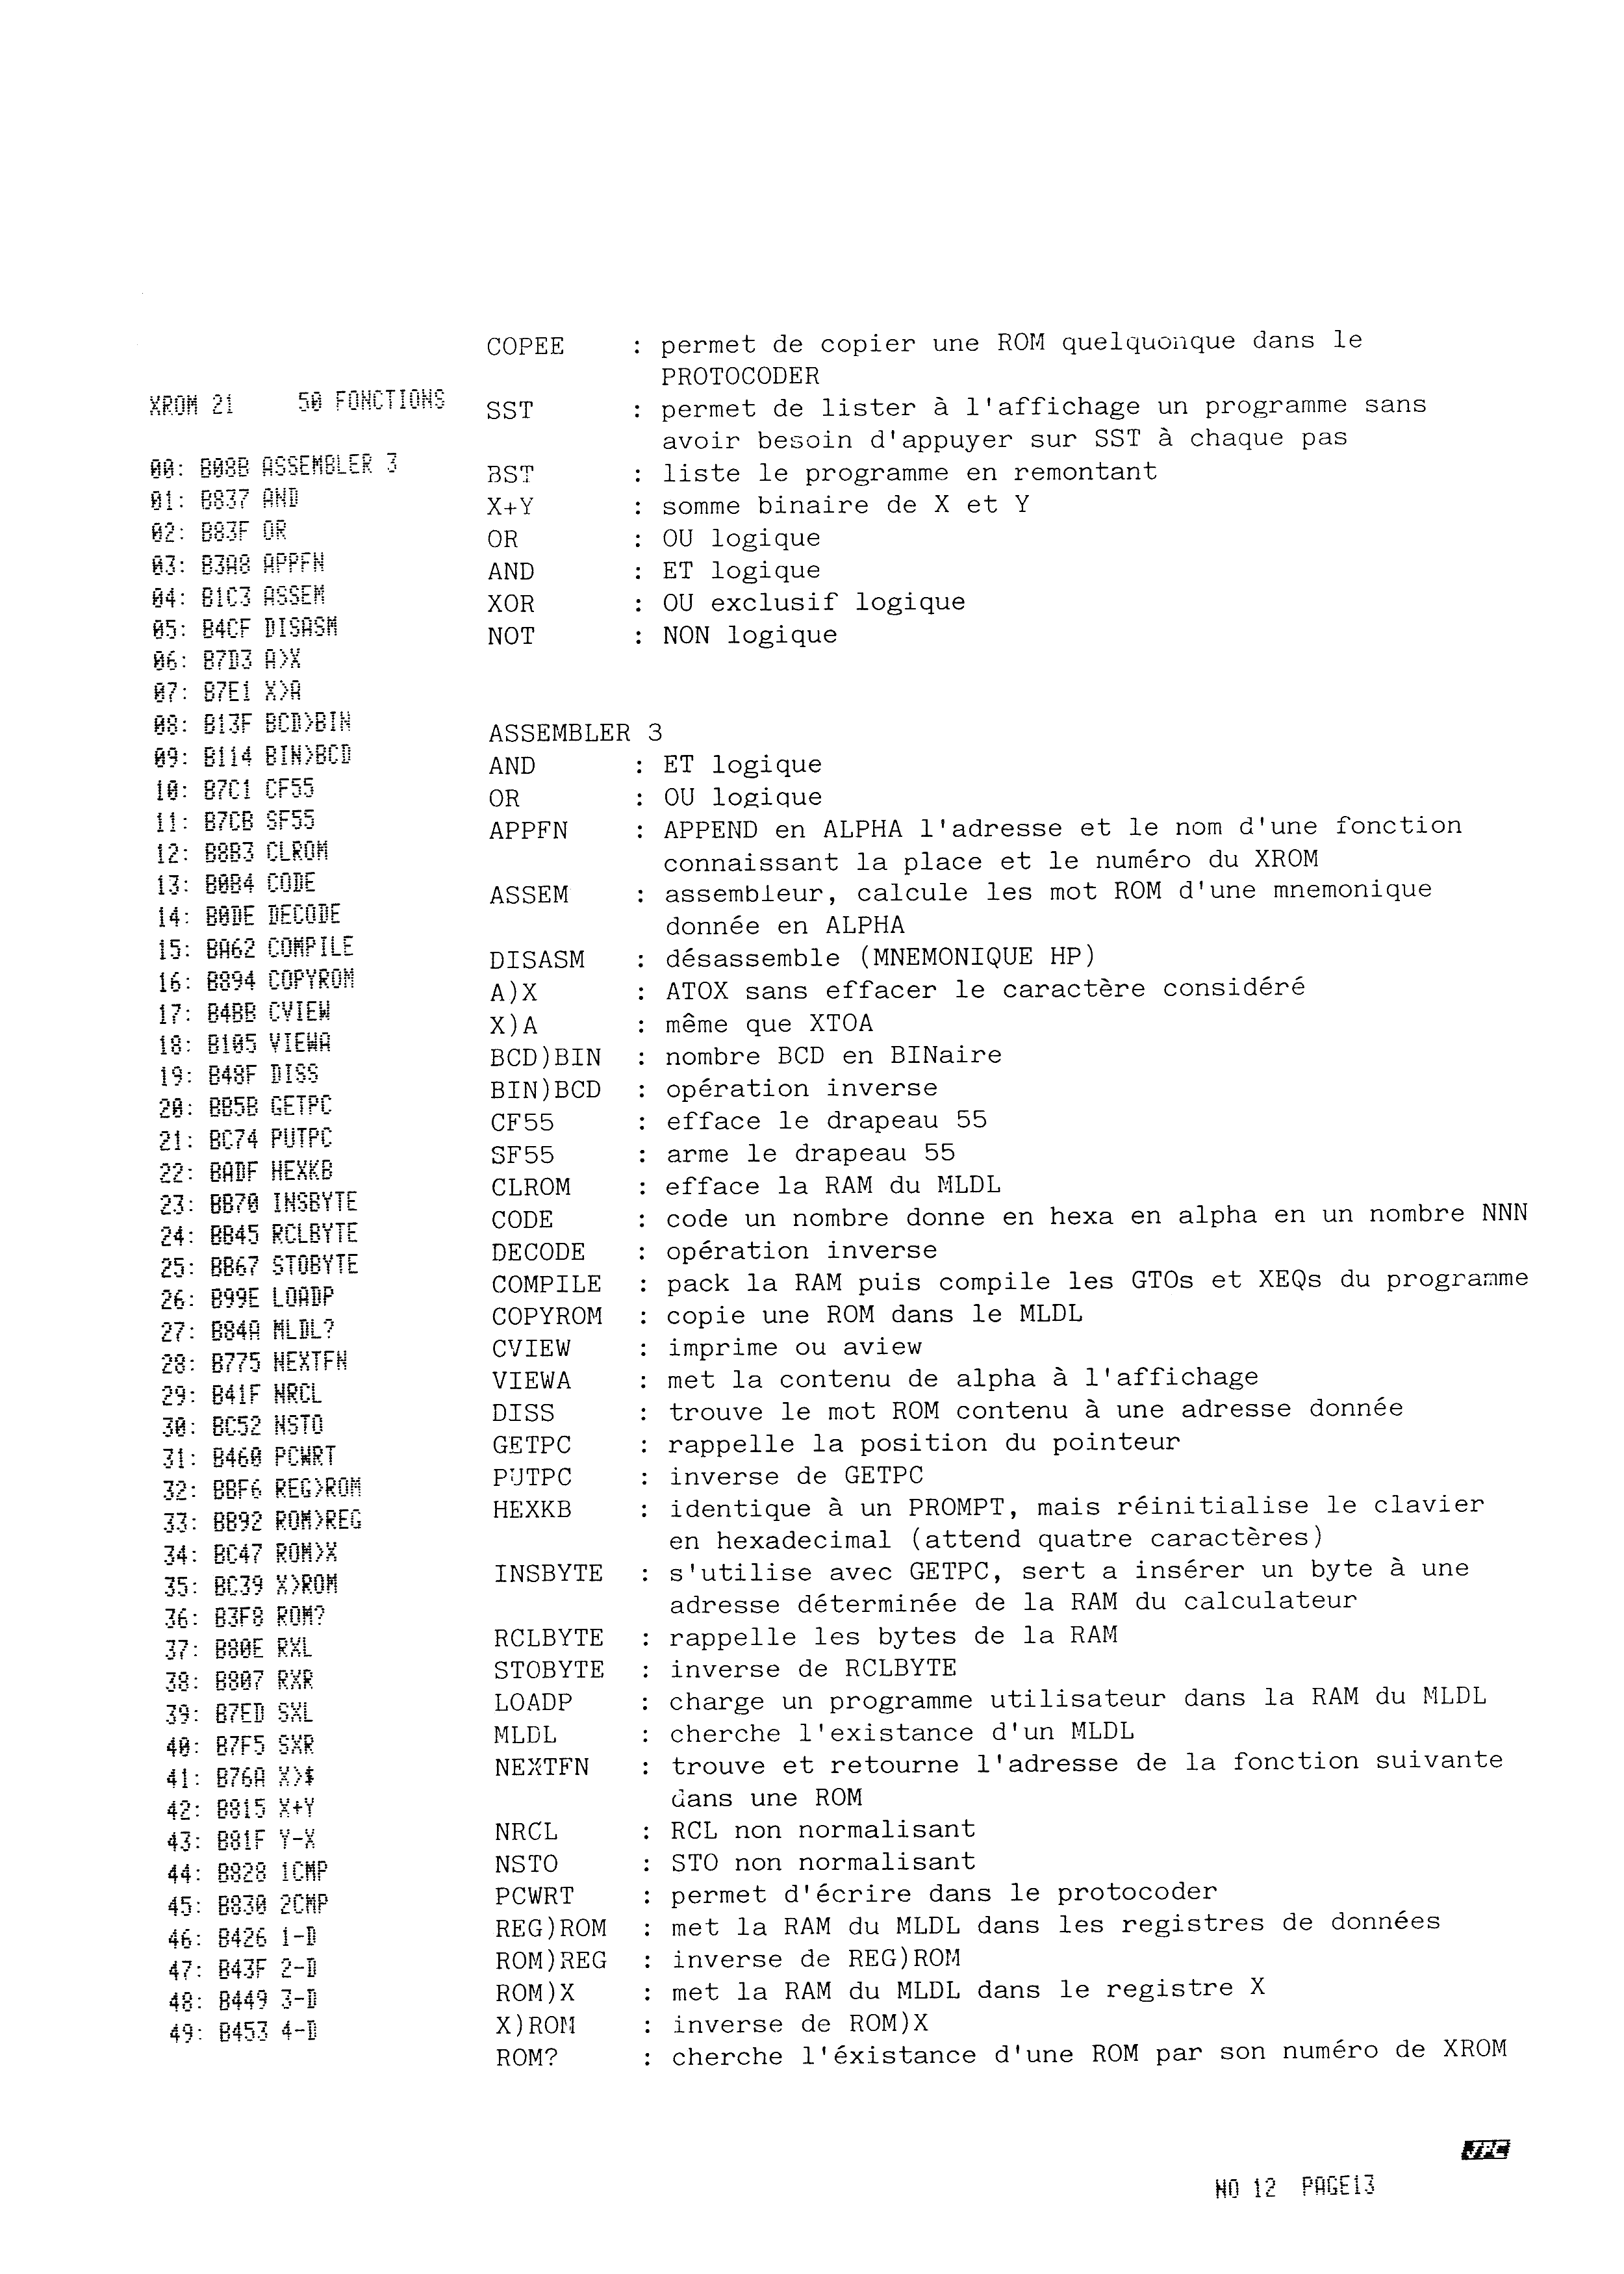 Jp-12-page-13-1000